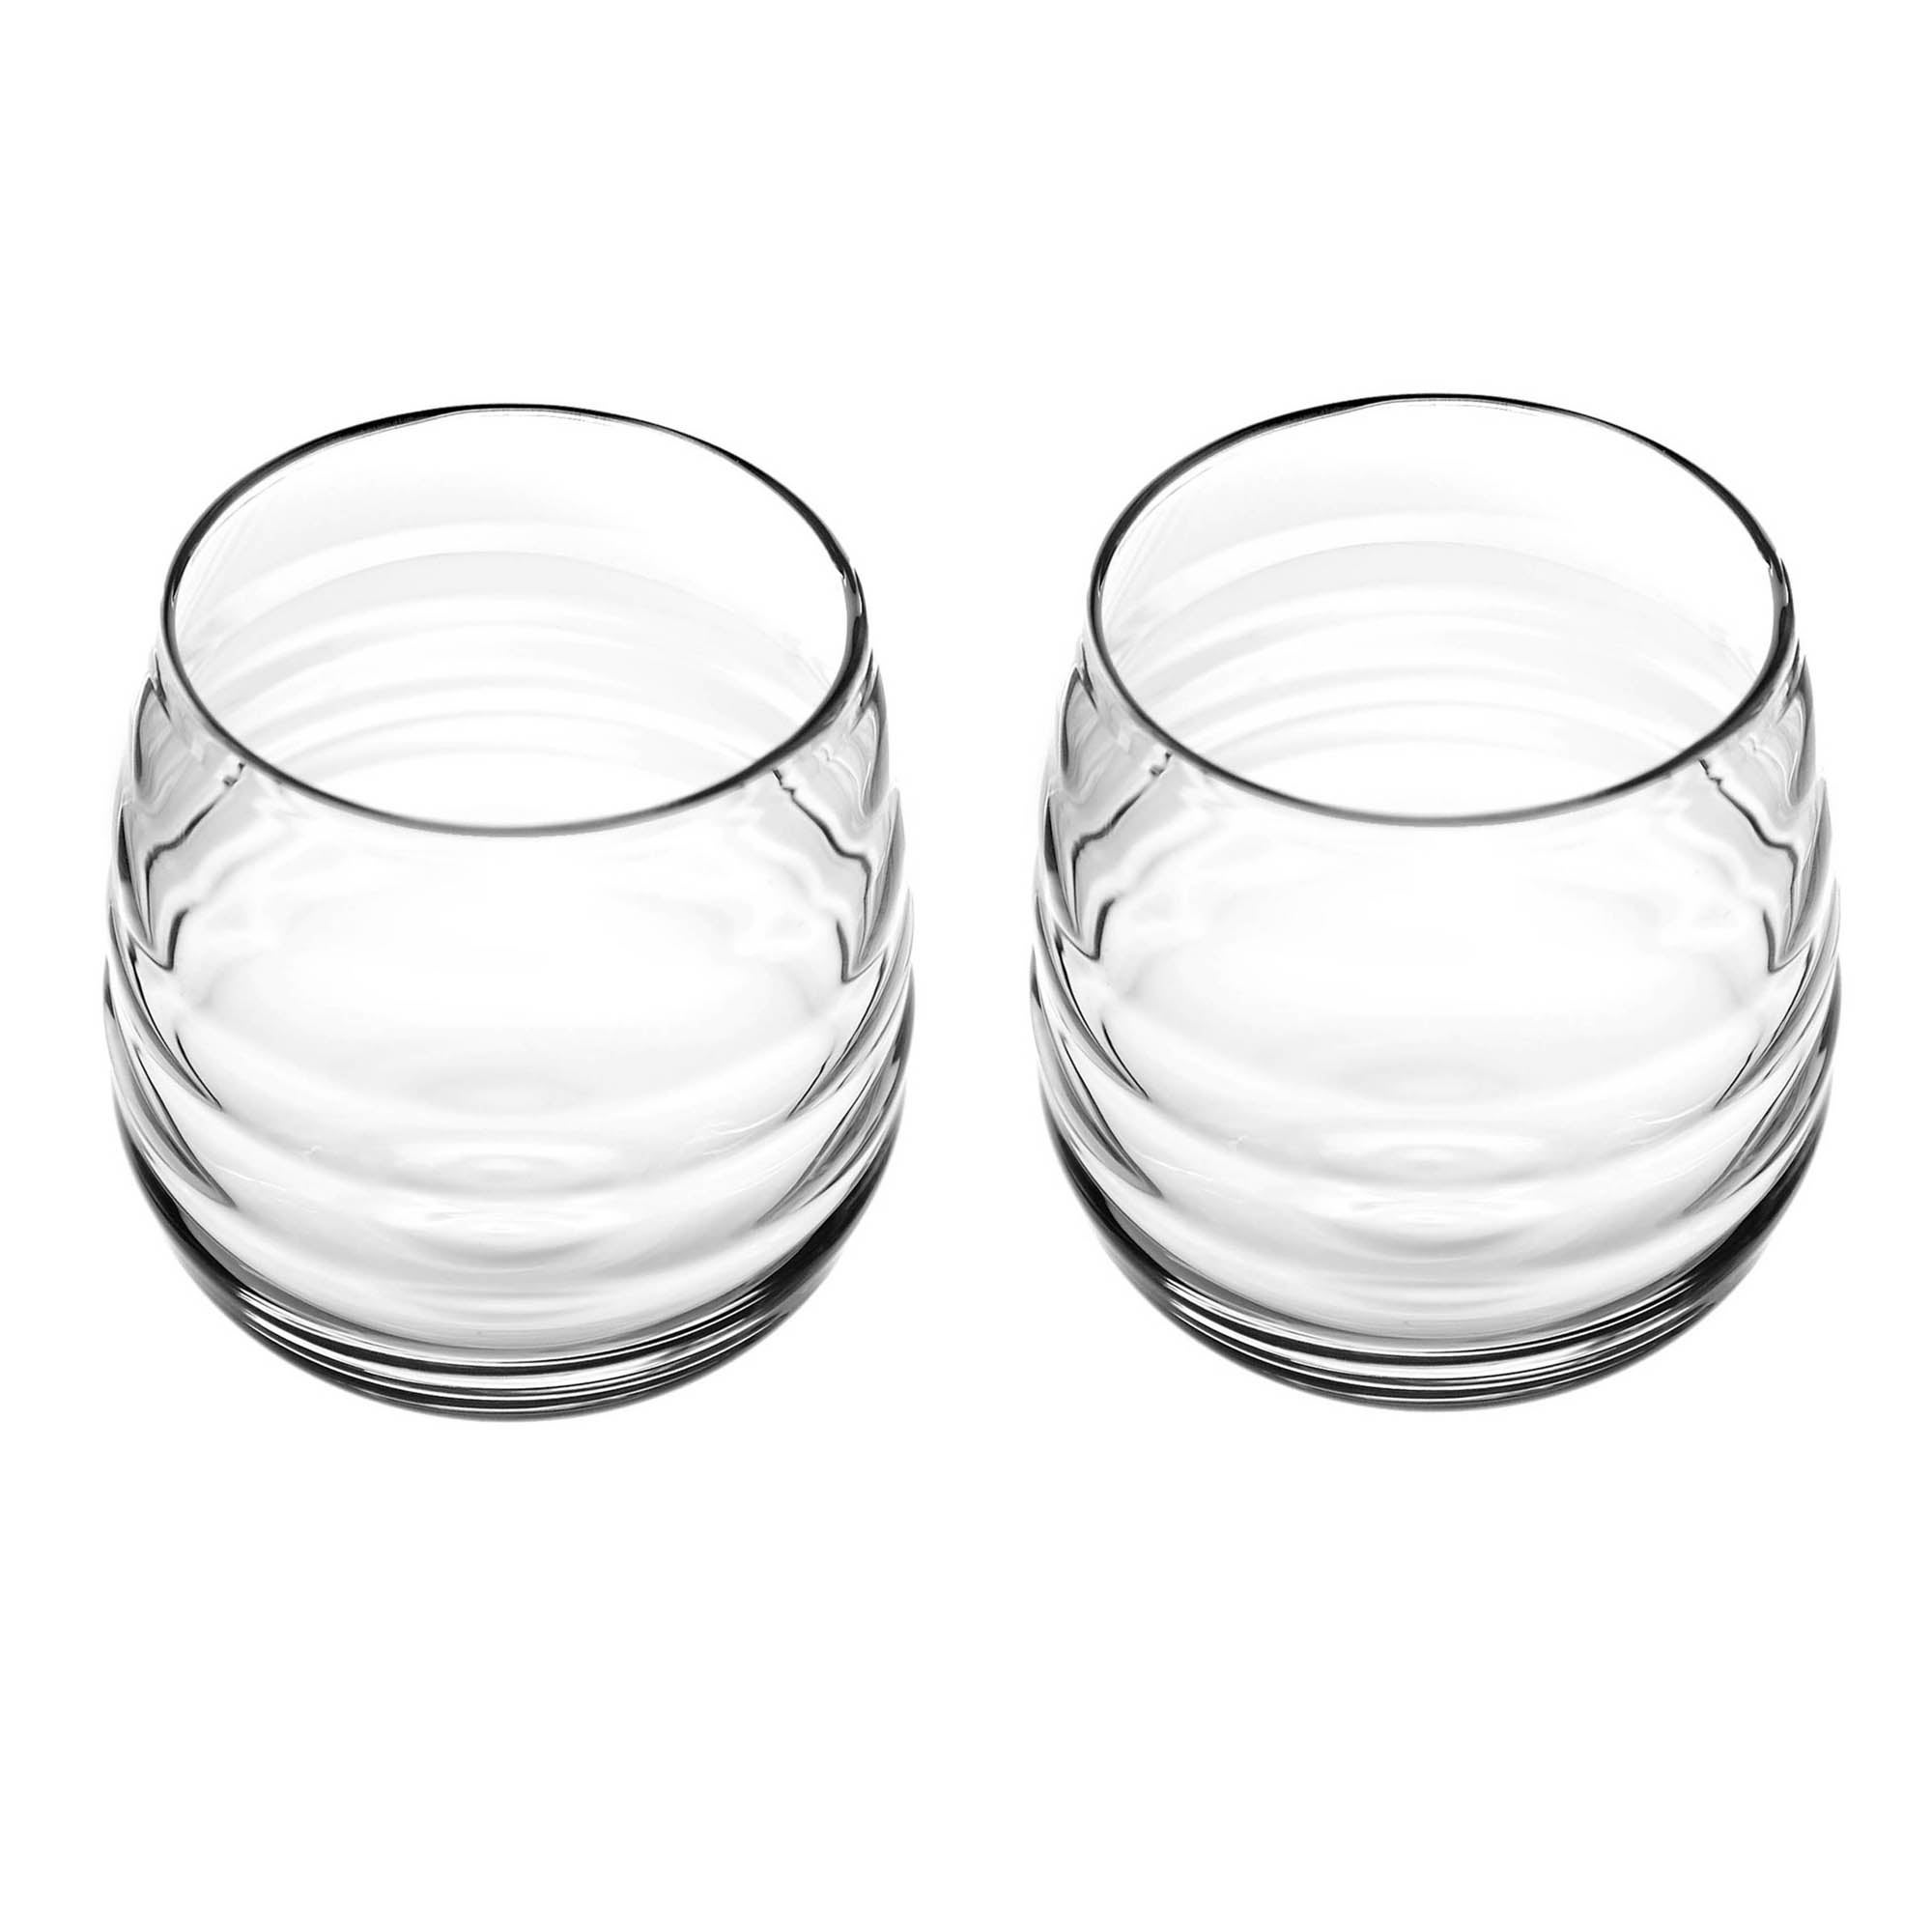 Sophie Conran for Portmeirion . Sophie Conran for Portmeirion Balloon Set of 2 Tumblers Clear